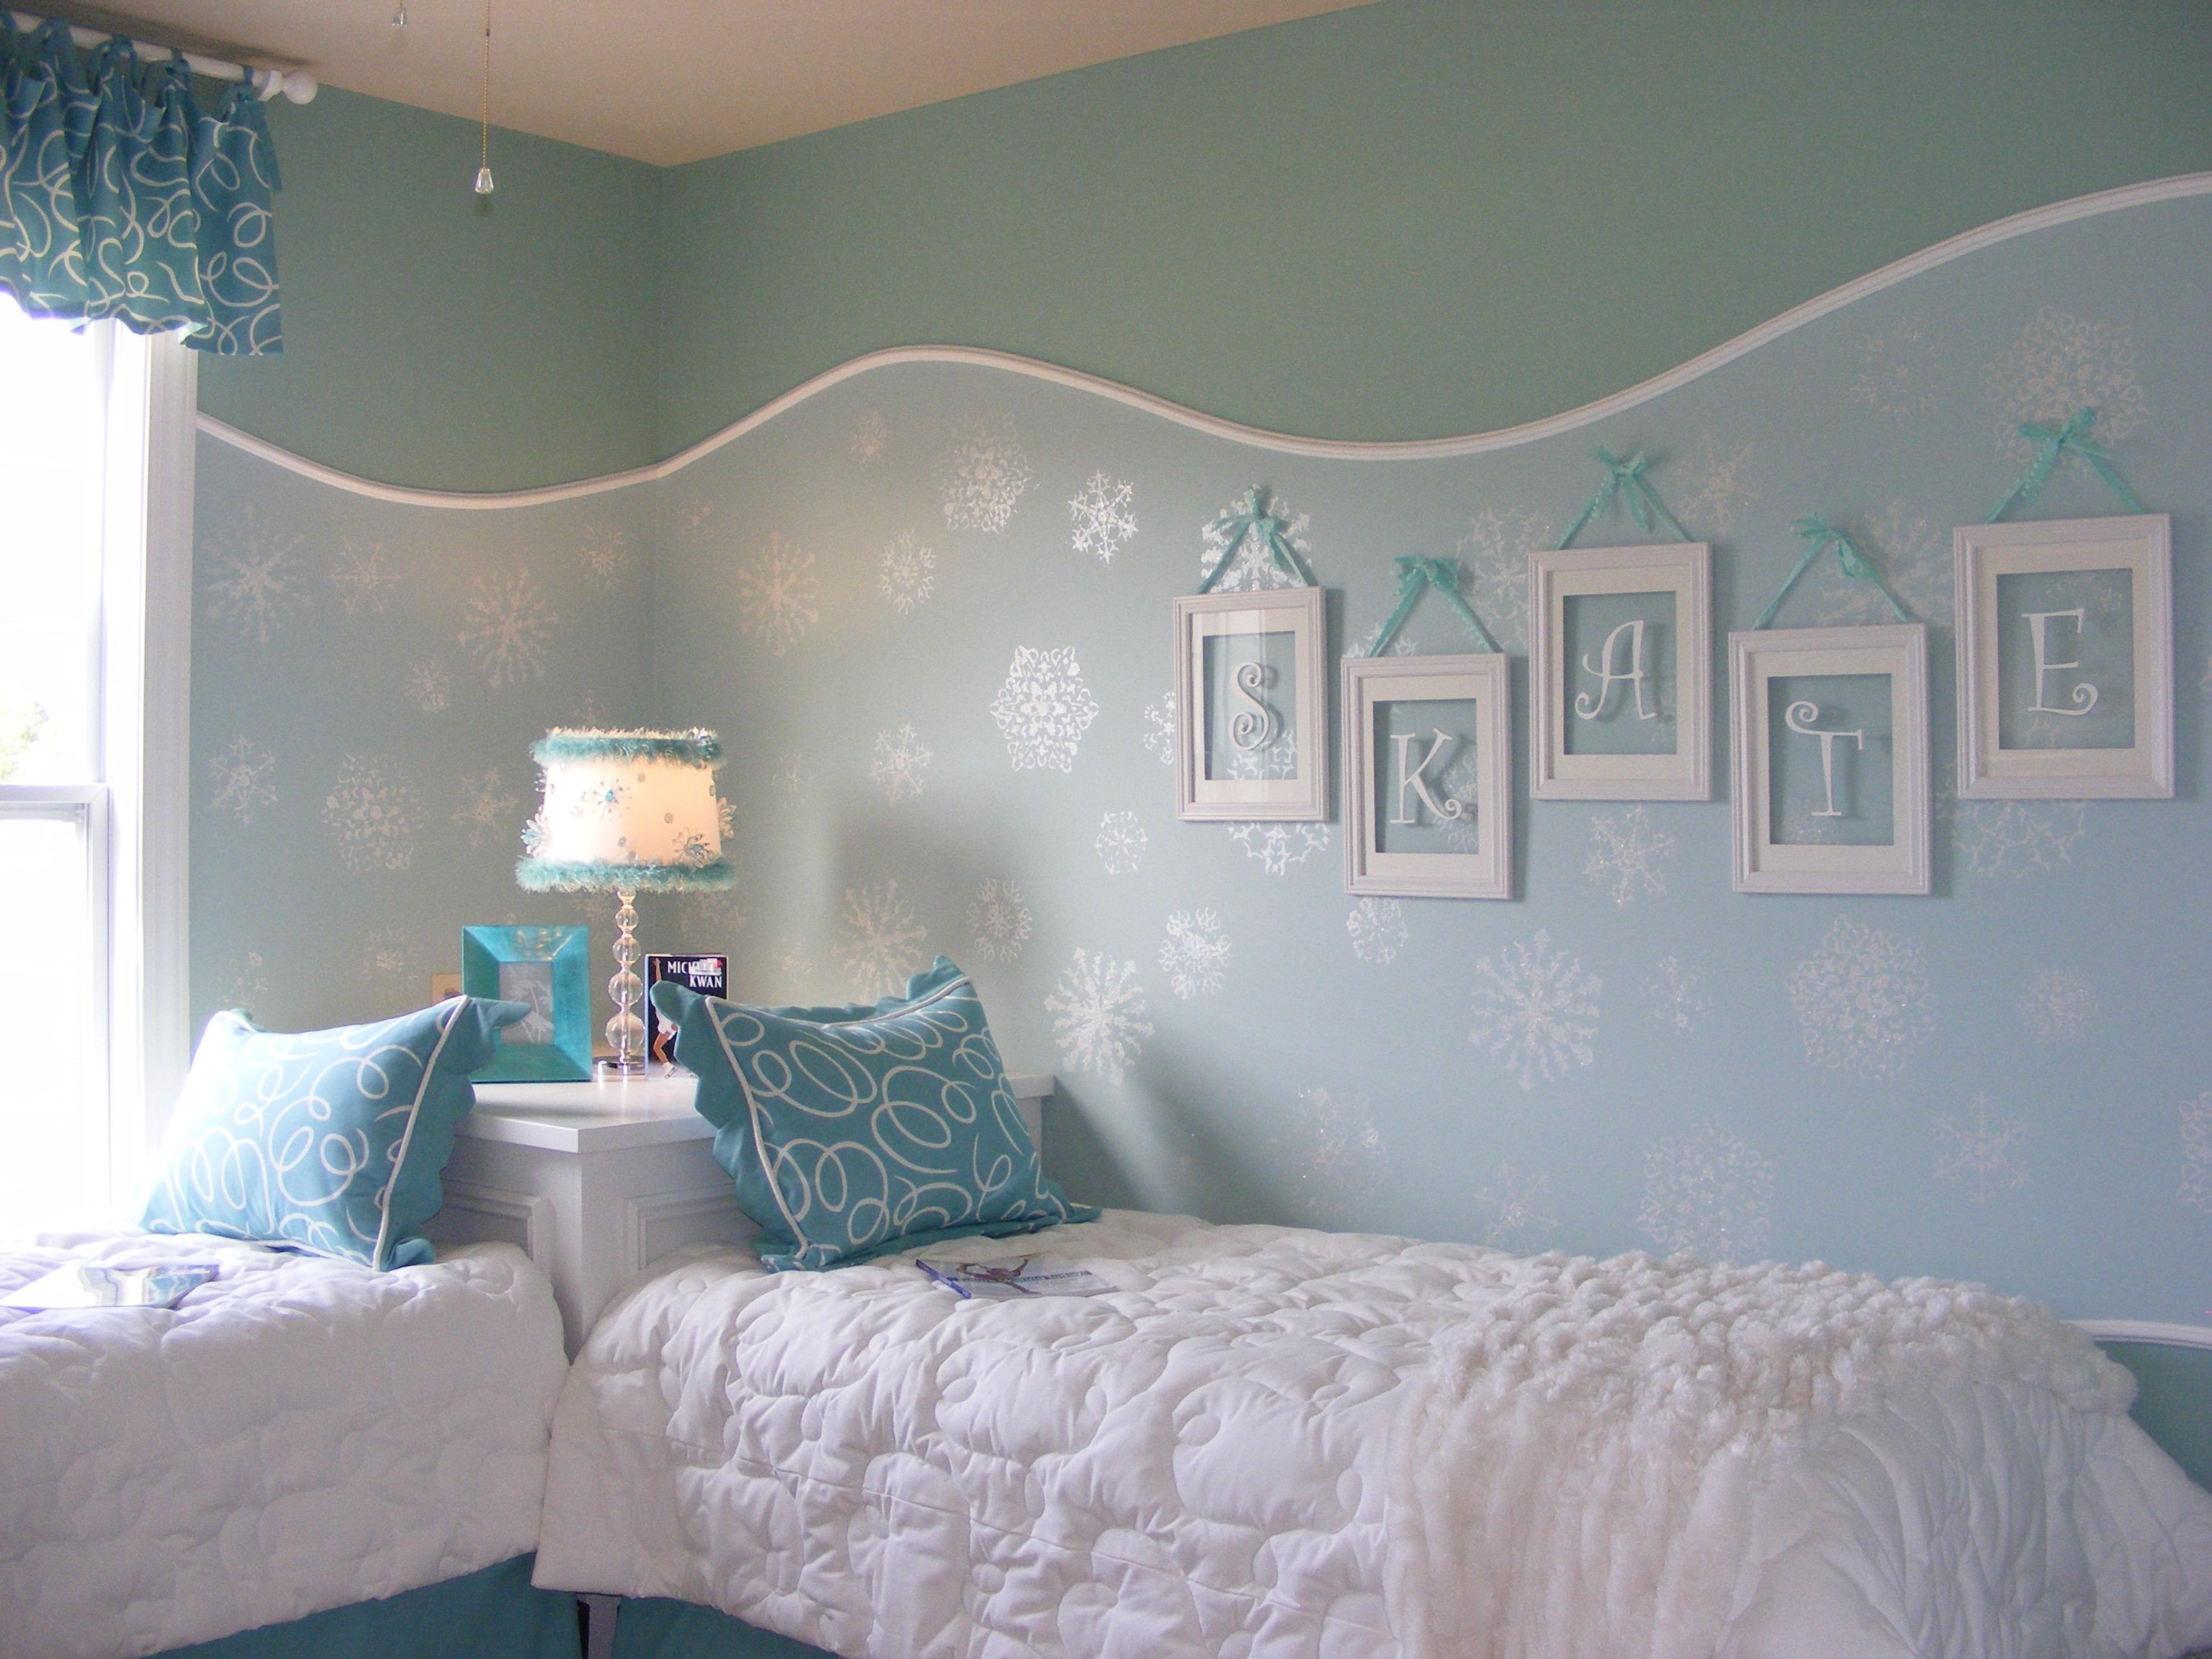 Frozen themed Bedroom Ideas Luxury 92 Best Ideas for Lydia S Frozen theme Bedroom Images